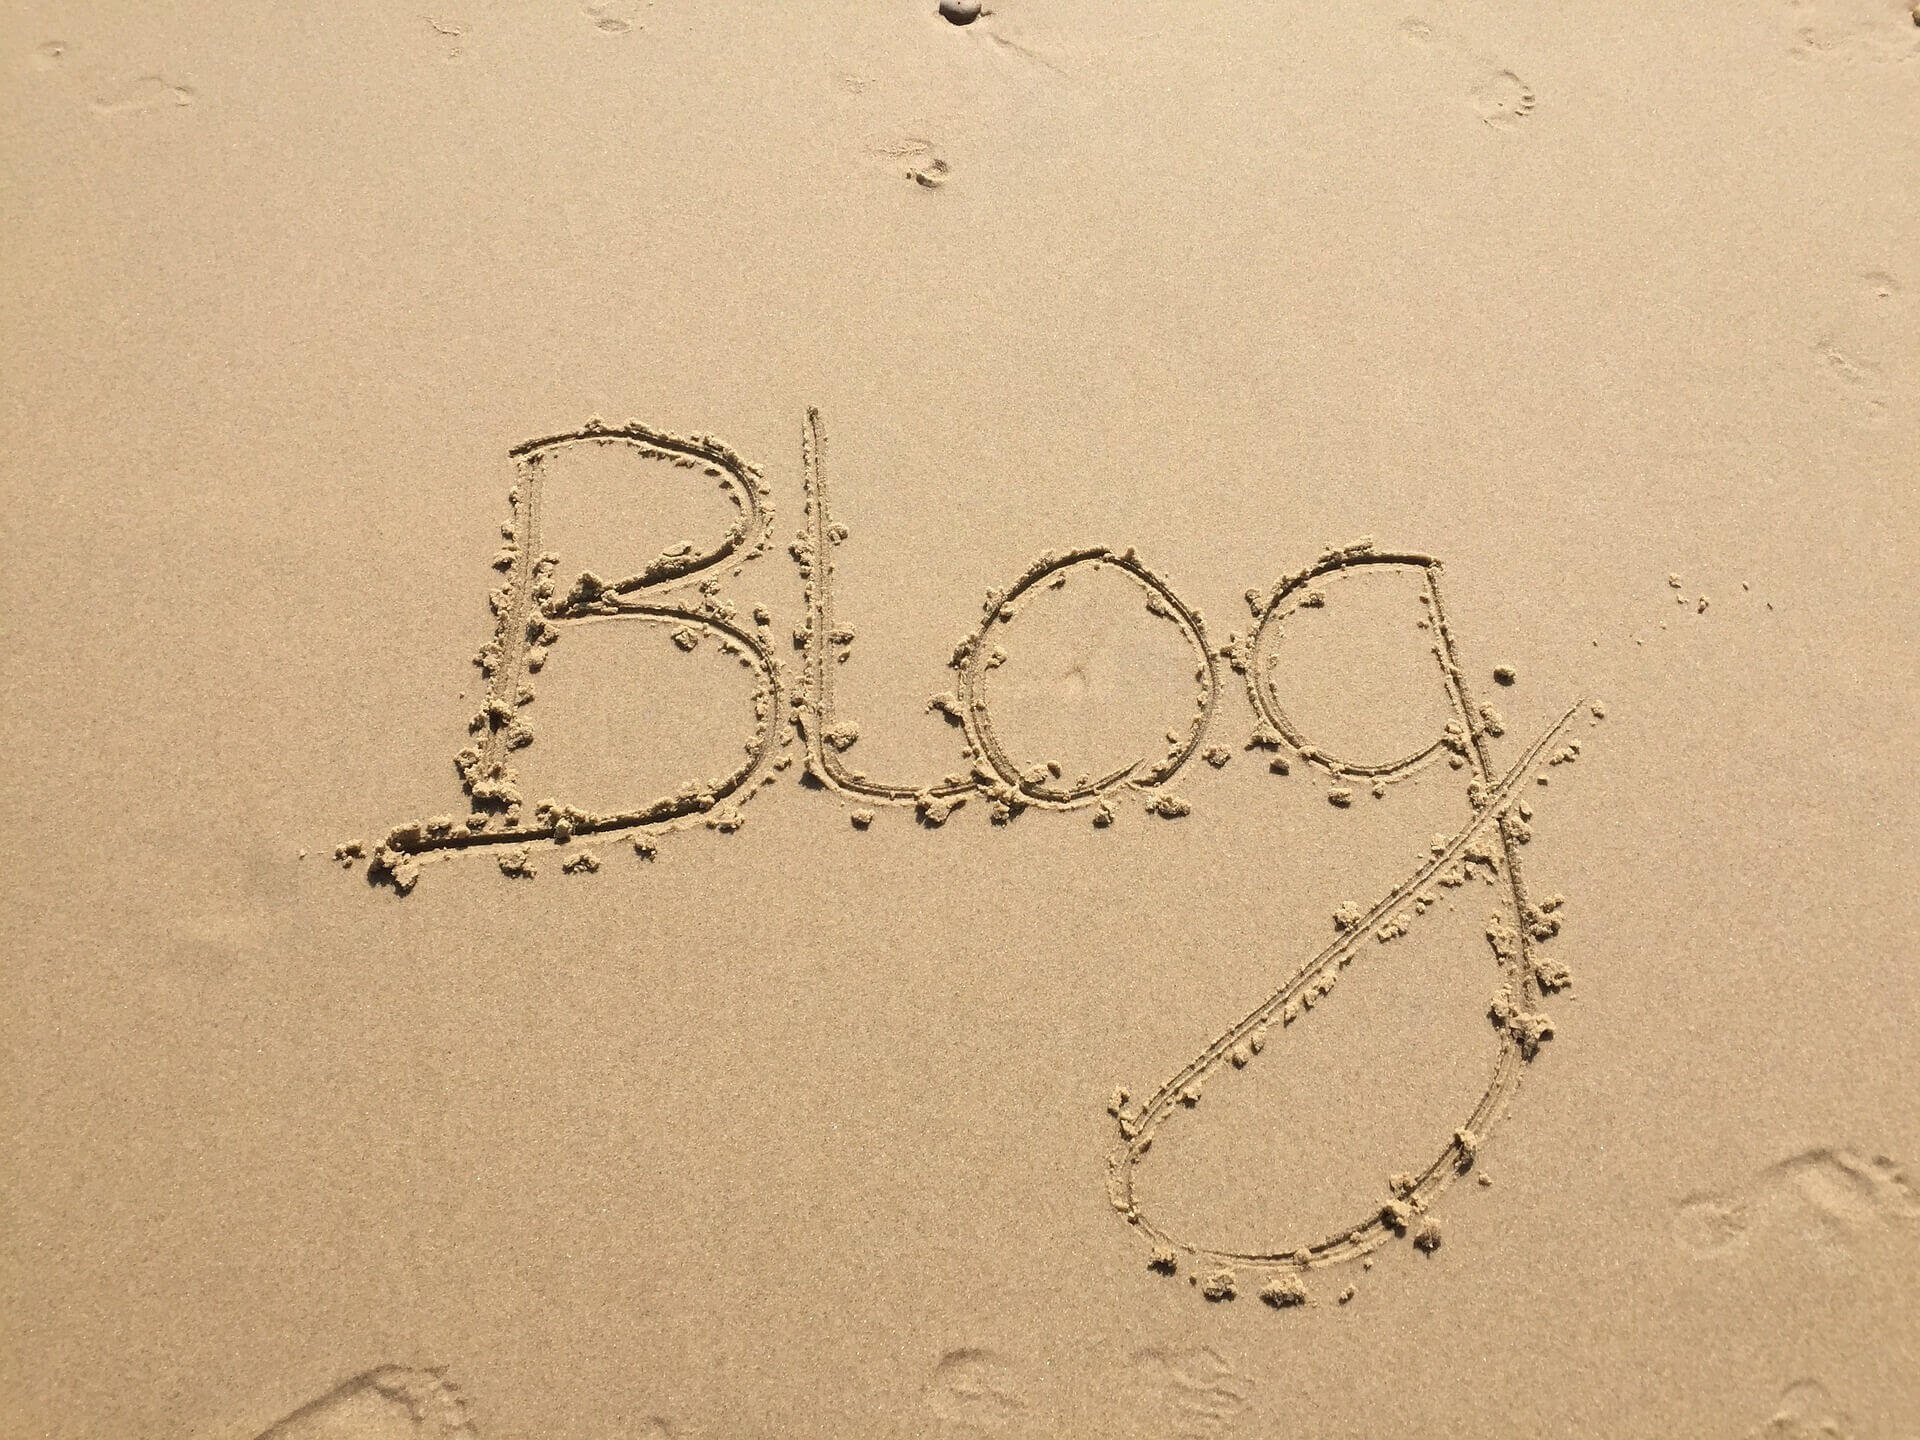 blogging adds value to your tourism website